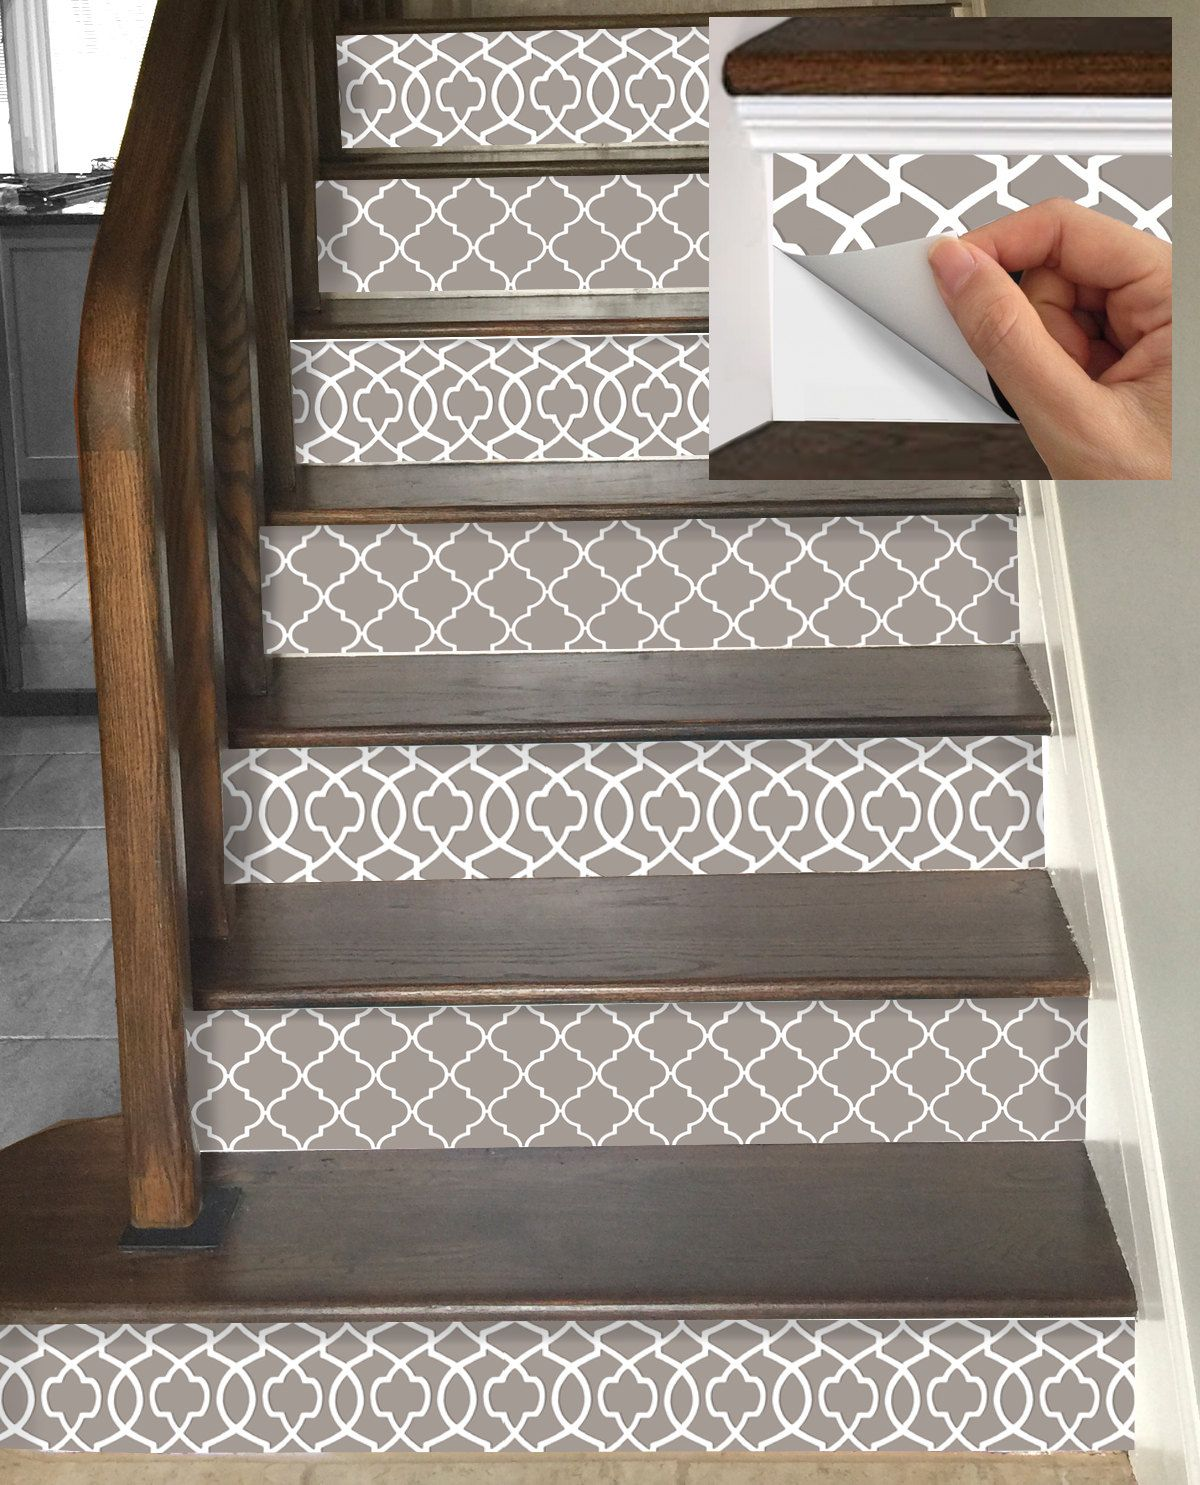 Stair Riser Decals   Removable. Gray And White. Love This. Super Stylish  Way To Add Decor To Your Stair Risers And Hides Scuff Marks So You Donu0027t  Need To ...